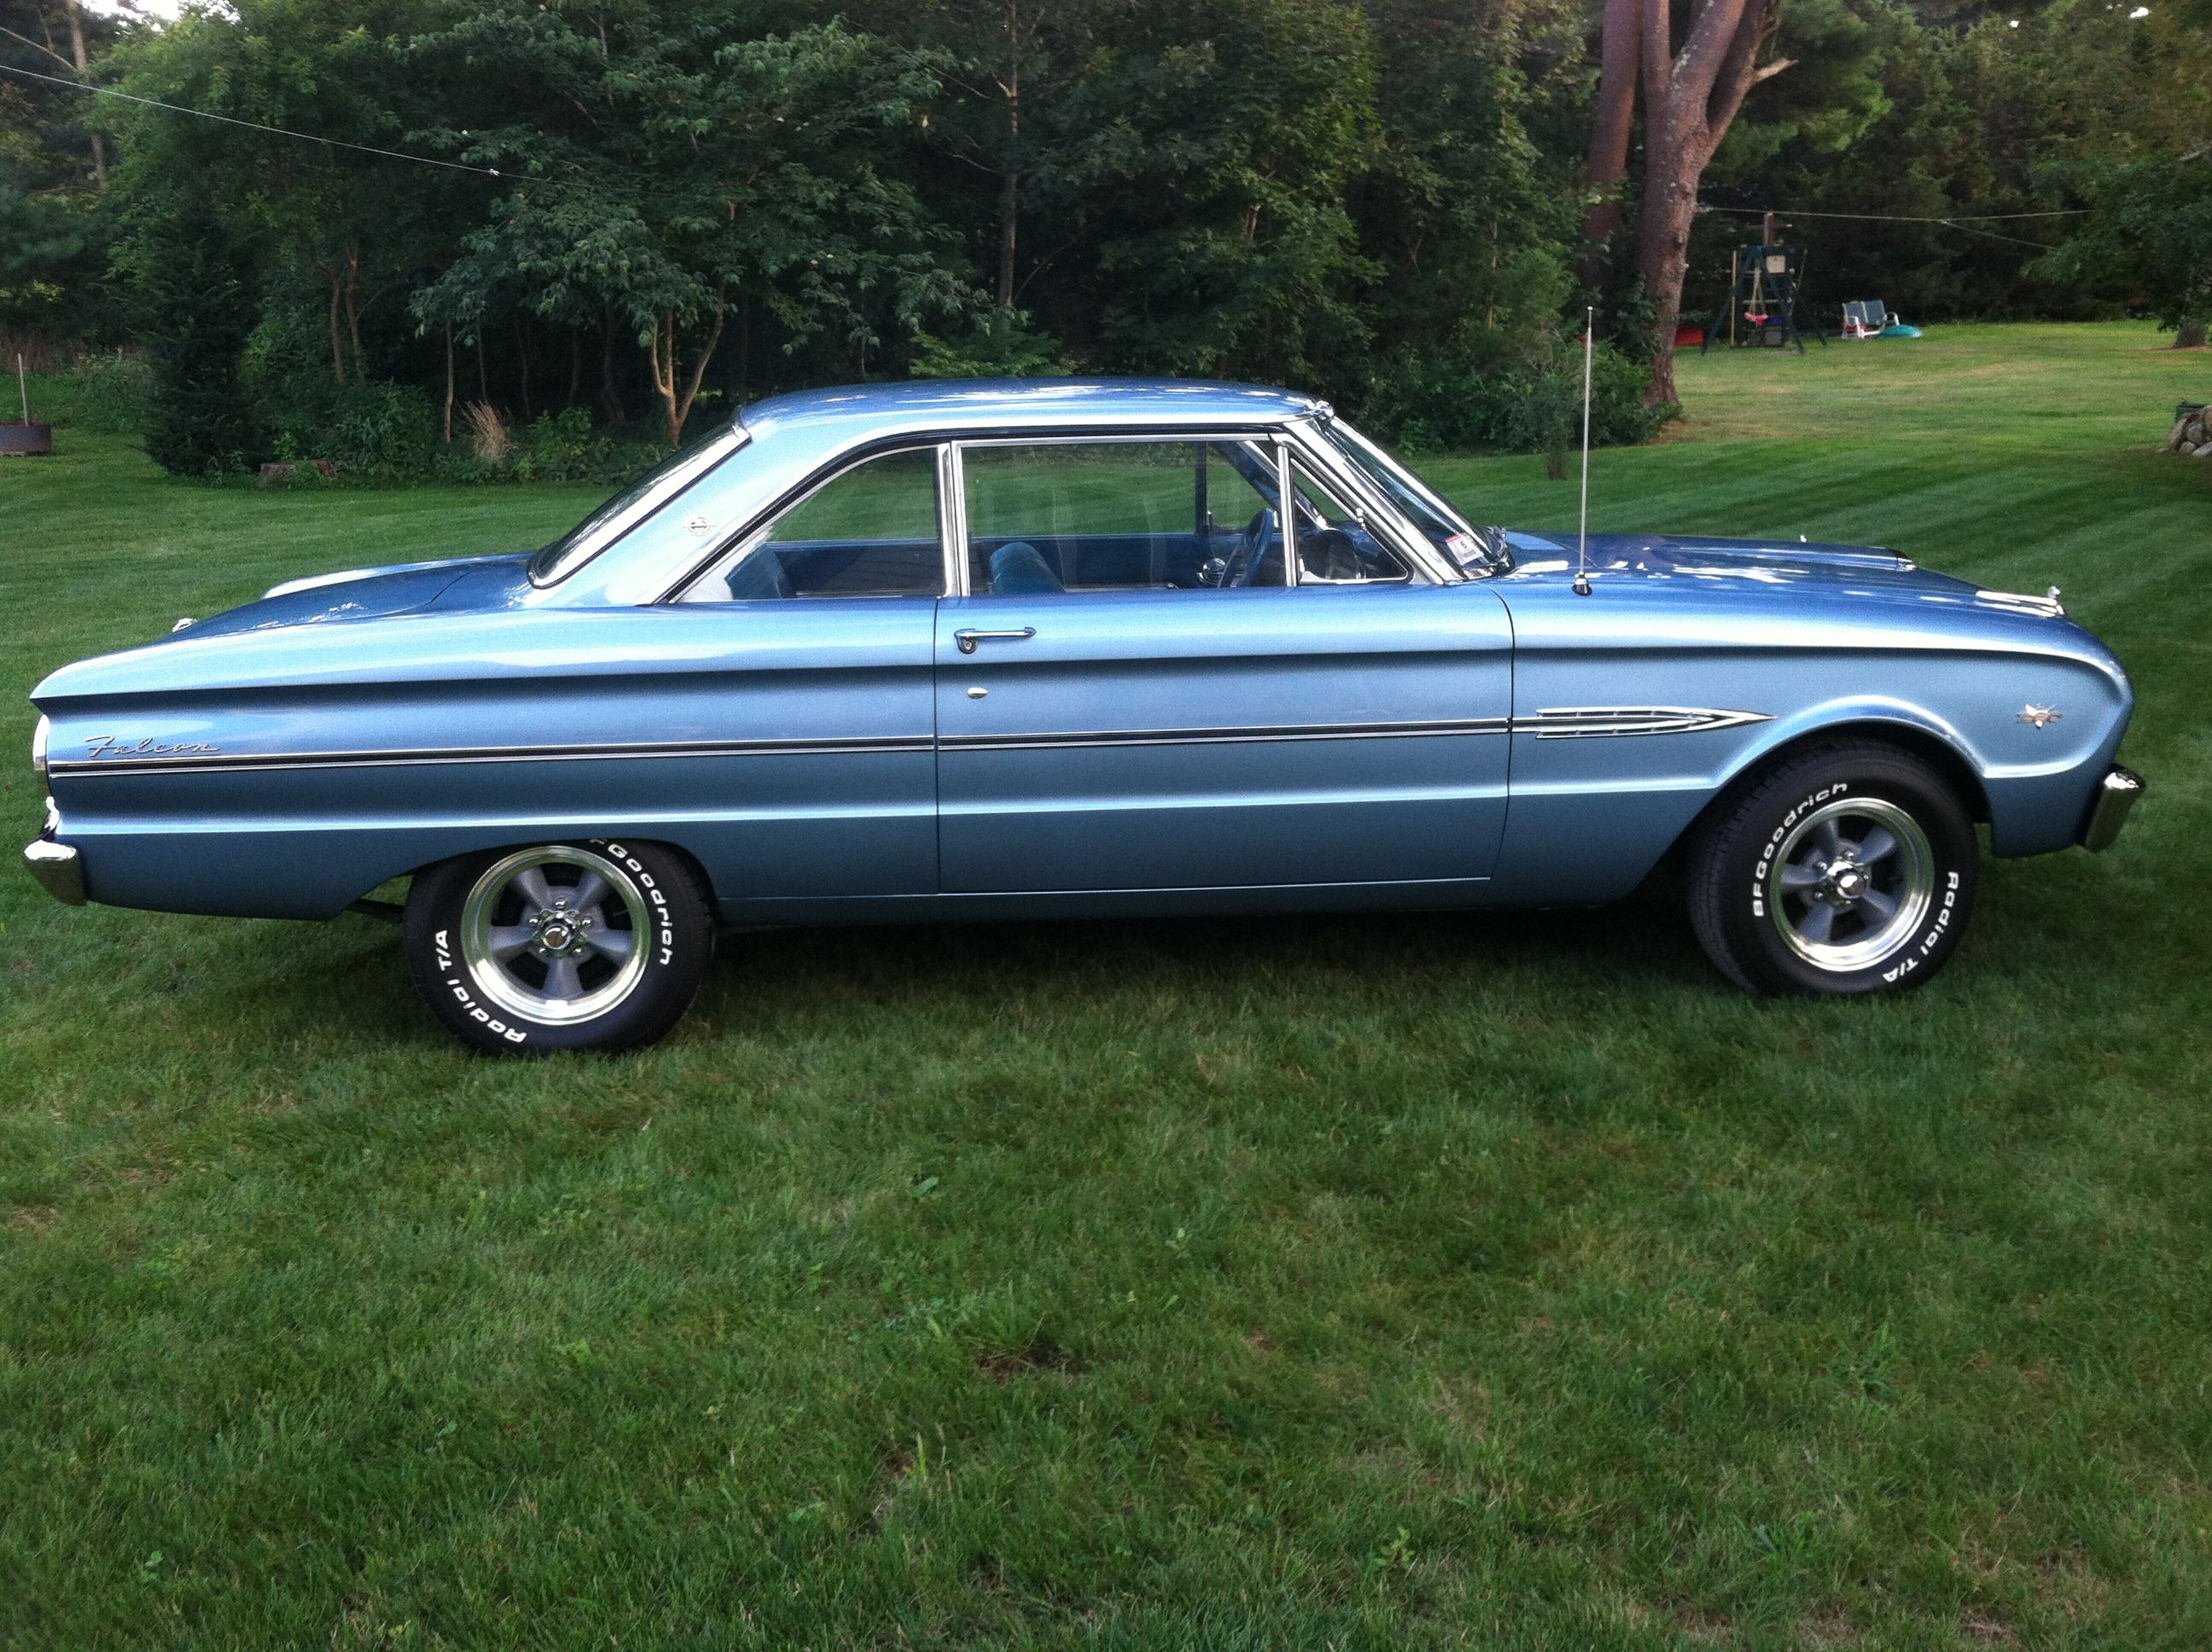 1961 ford falcon for sale racingjunk classifieds - 1962 Ford Falcon Ranchero Maintenance Restoration Of Old Vintage Vehicles The Material For New Cogs Casters Gears Pads Could Be Cast Polyamide Whi